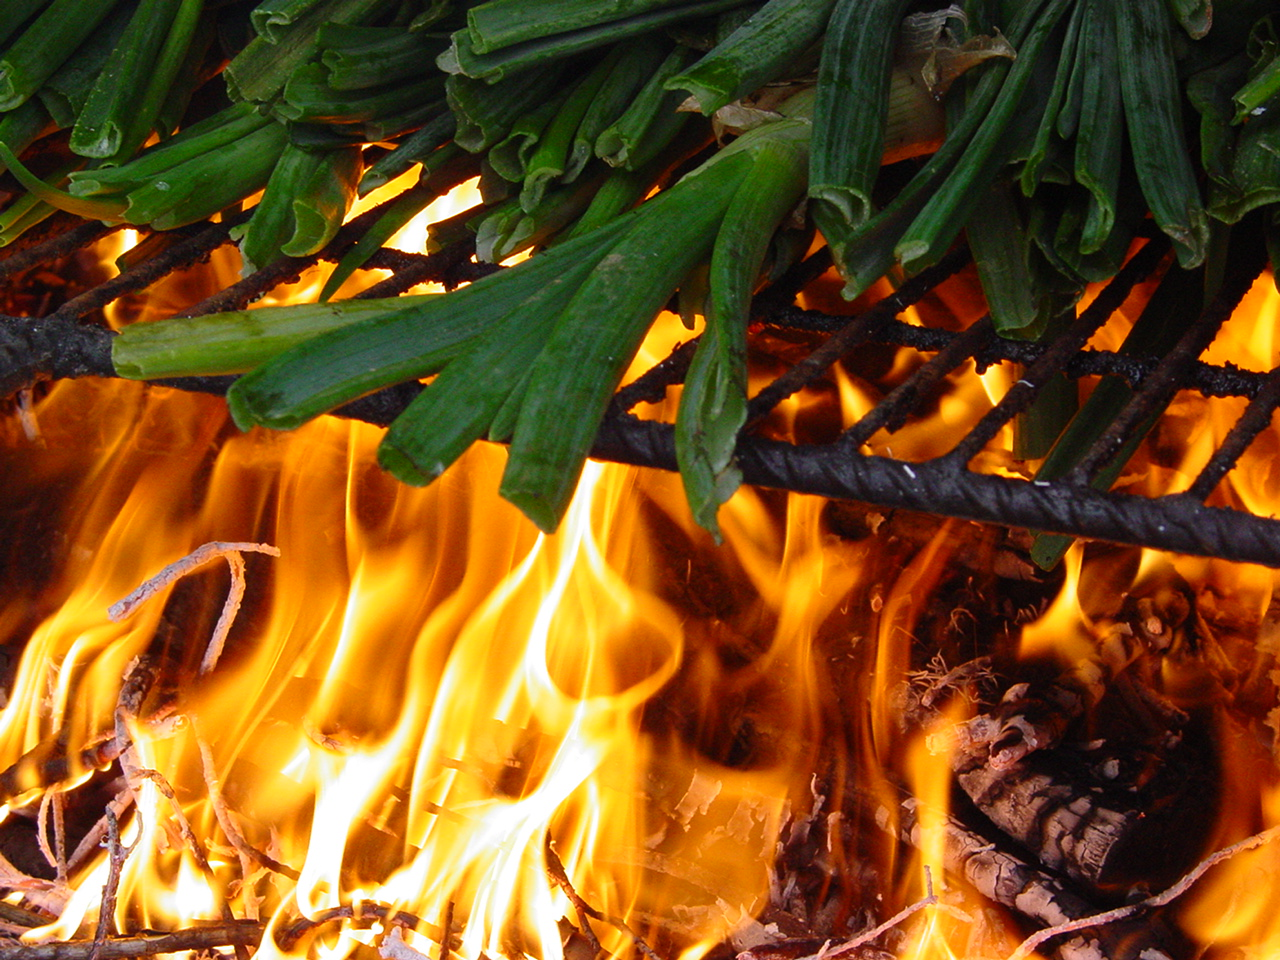 Catalan traditions: the Calçots and la Calçotada